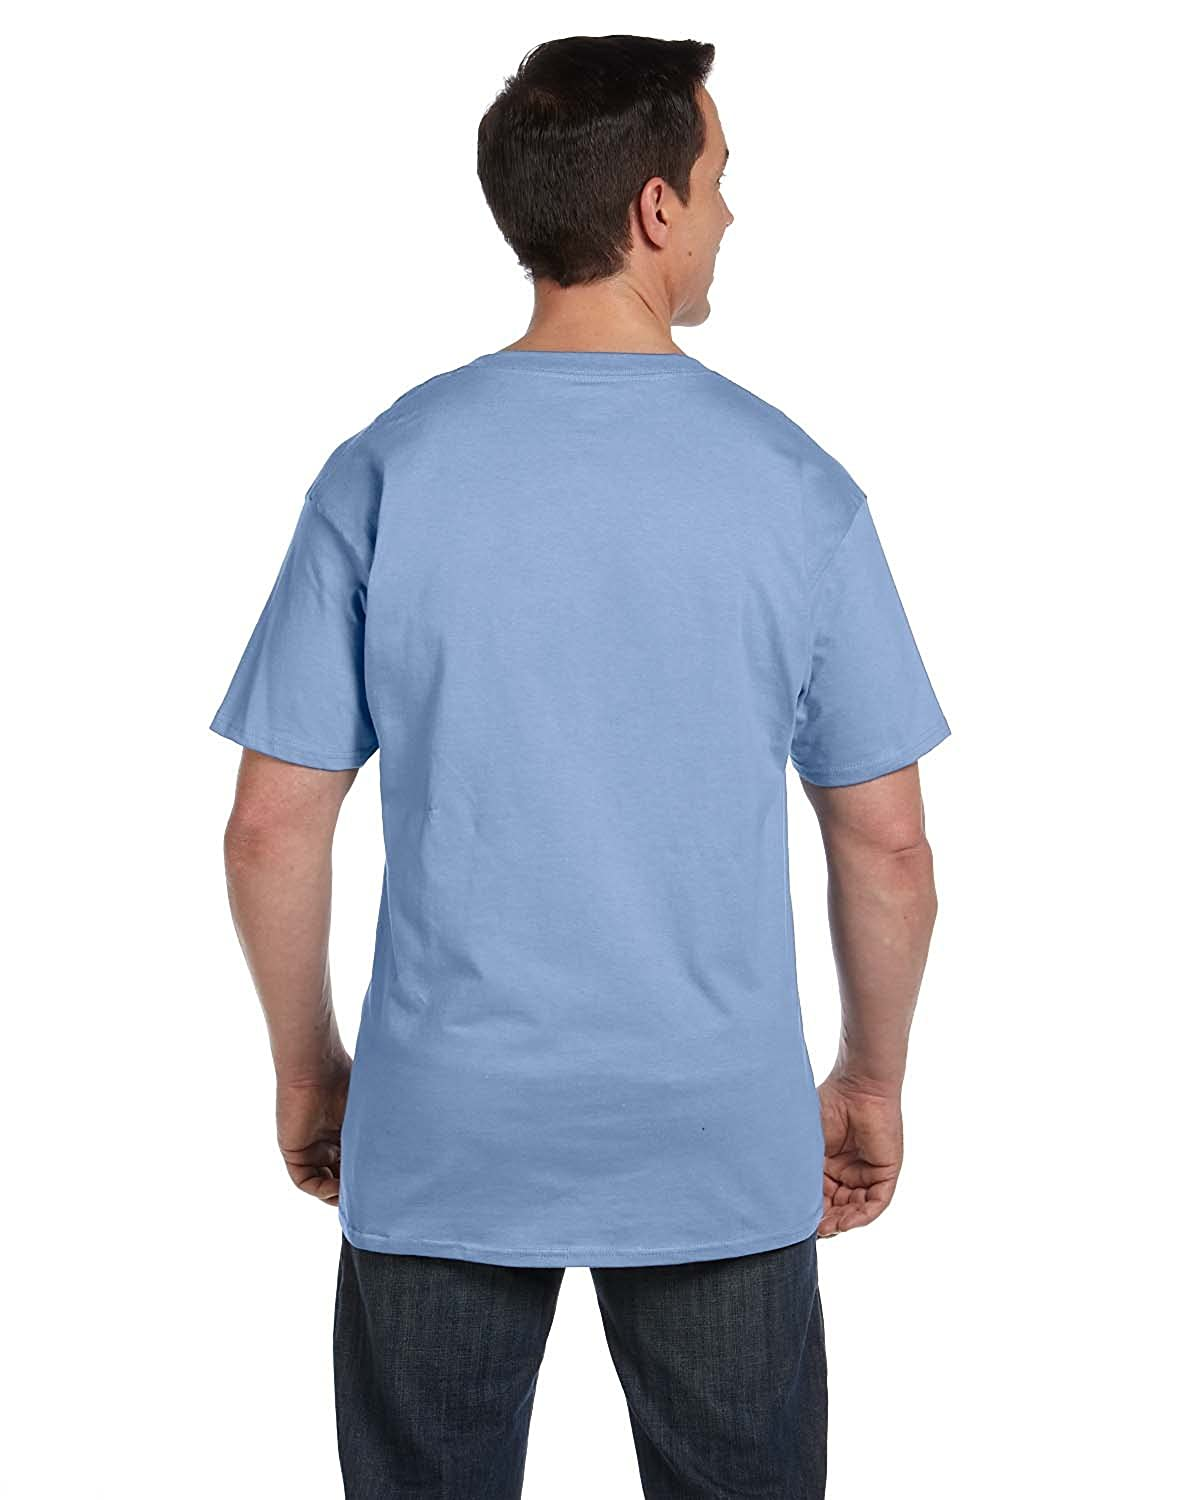 Hanes 6.1 oz Beefy-T with Pocket 5190P Light Blue XL